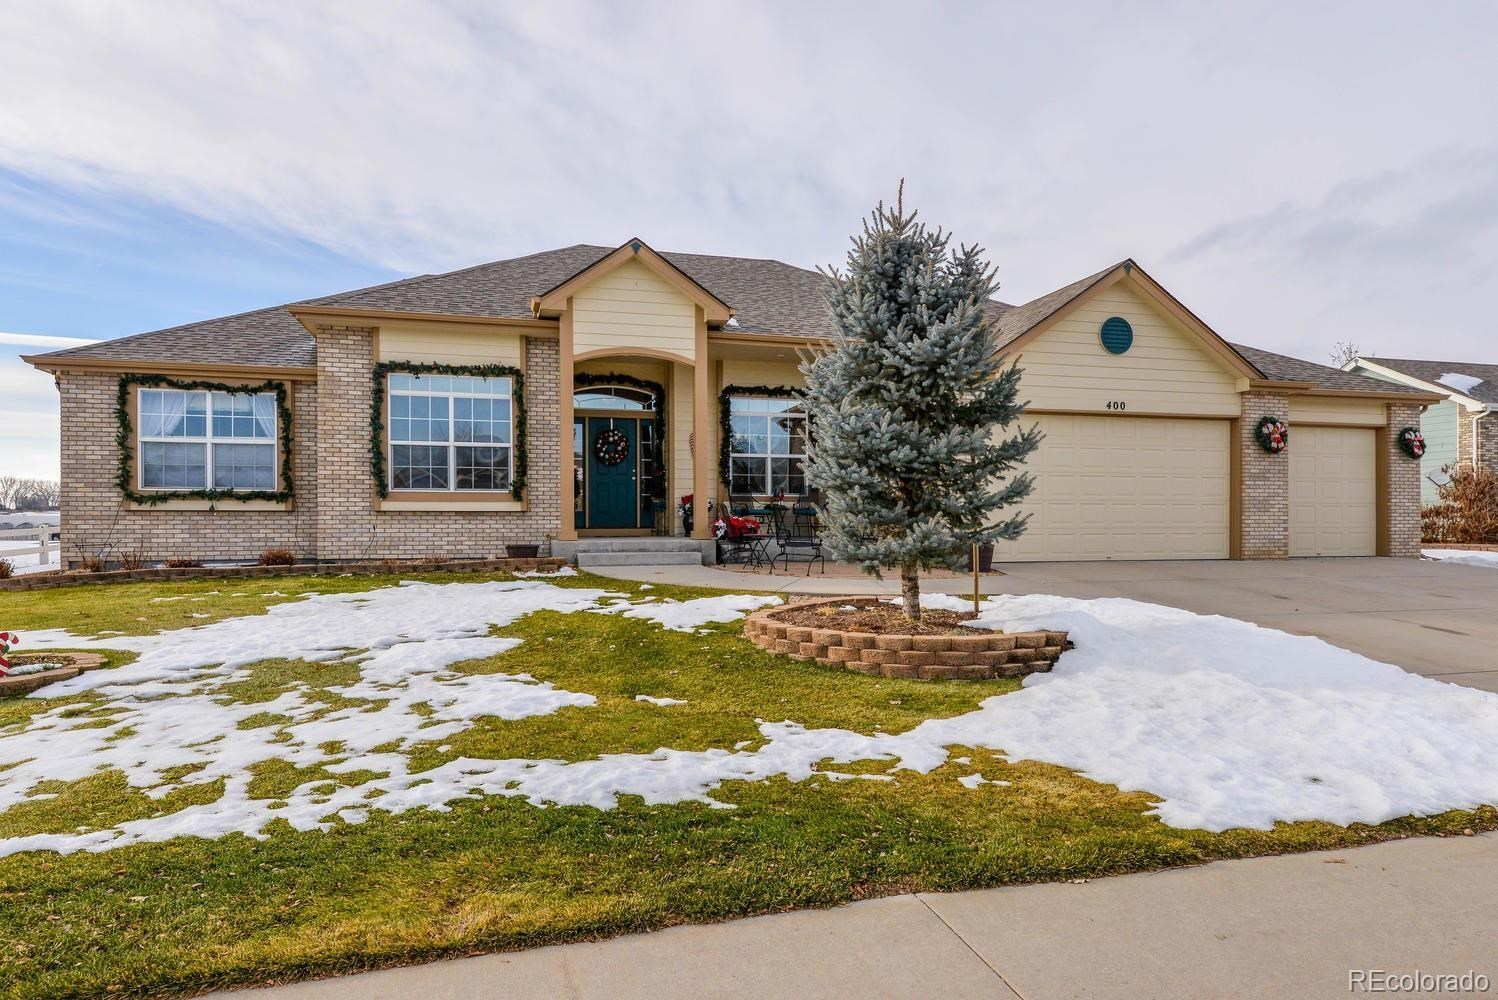 MLS# 4899841 - 1 - 400 Estate Drive, Johnstown, CO 80534